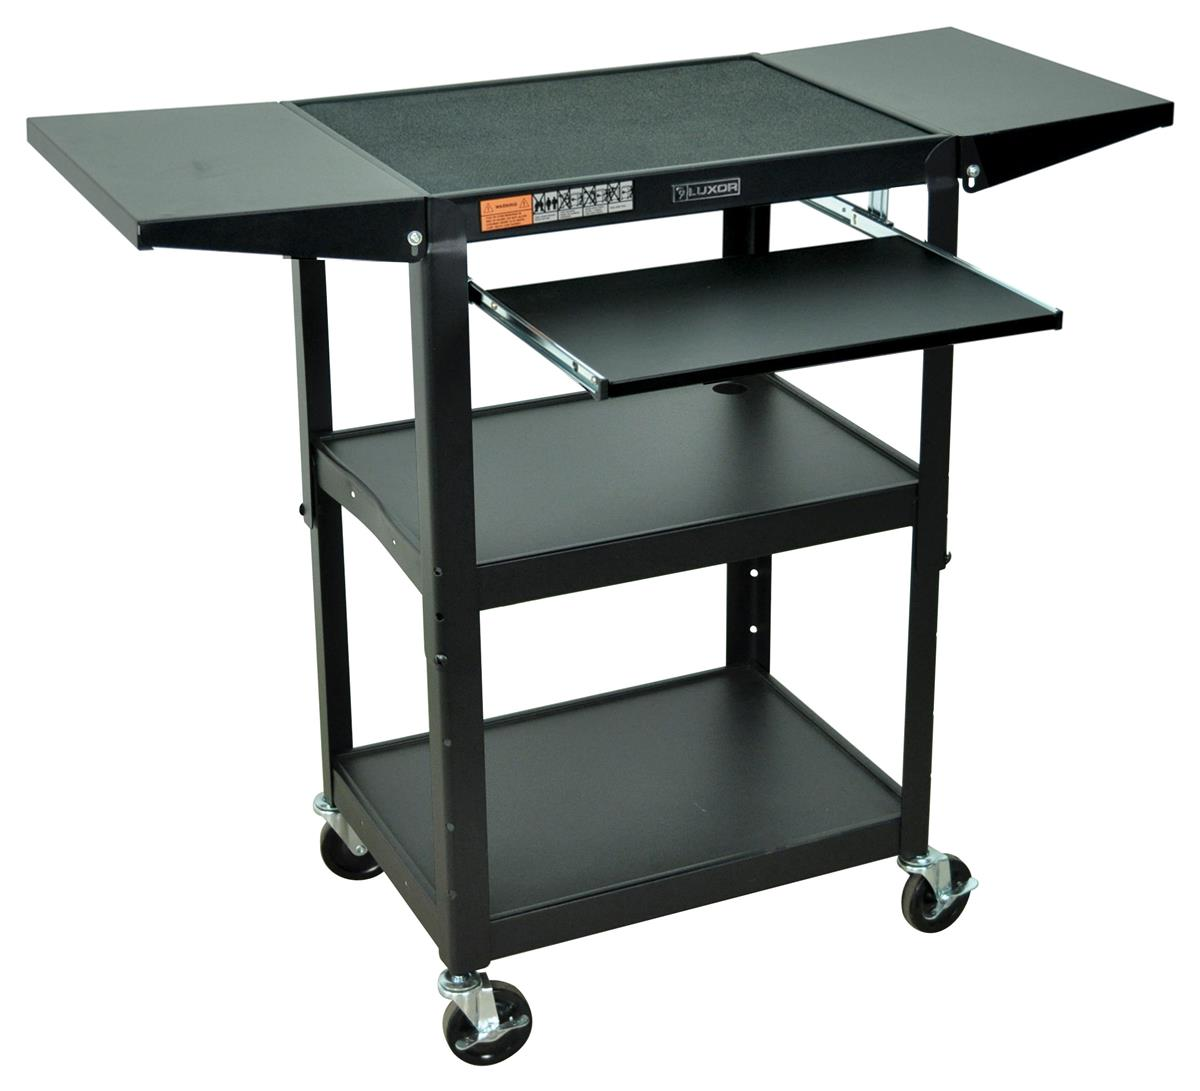 Av Carts For Multimedia Presentations Features Pull Out Shelf